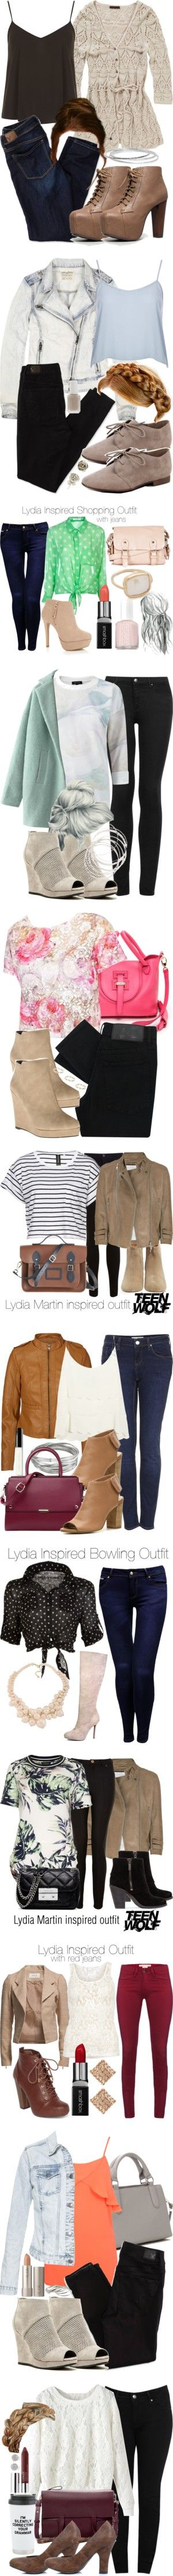 Lydia Martin ;; Outfits with Pants by marieh789 on Polyvore featuring Joe Browns, Dorothy Perkins, American Eagle Outfitters, Speed Limit 98, Argento Vivo, Topshop, Breckelle's, Nicola Crawford, Essie and Jane Norman